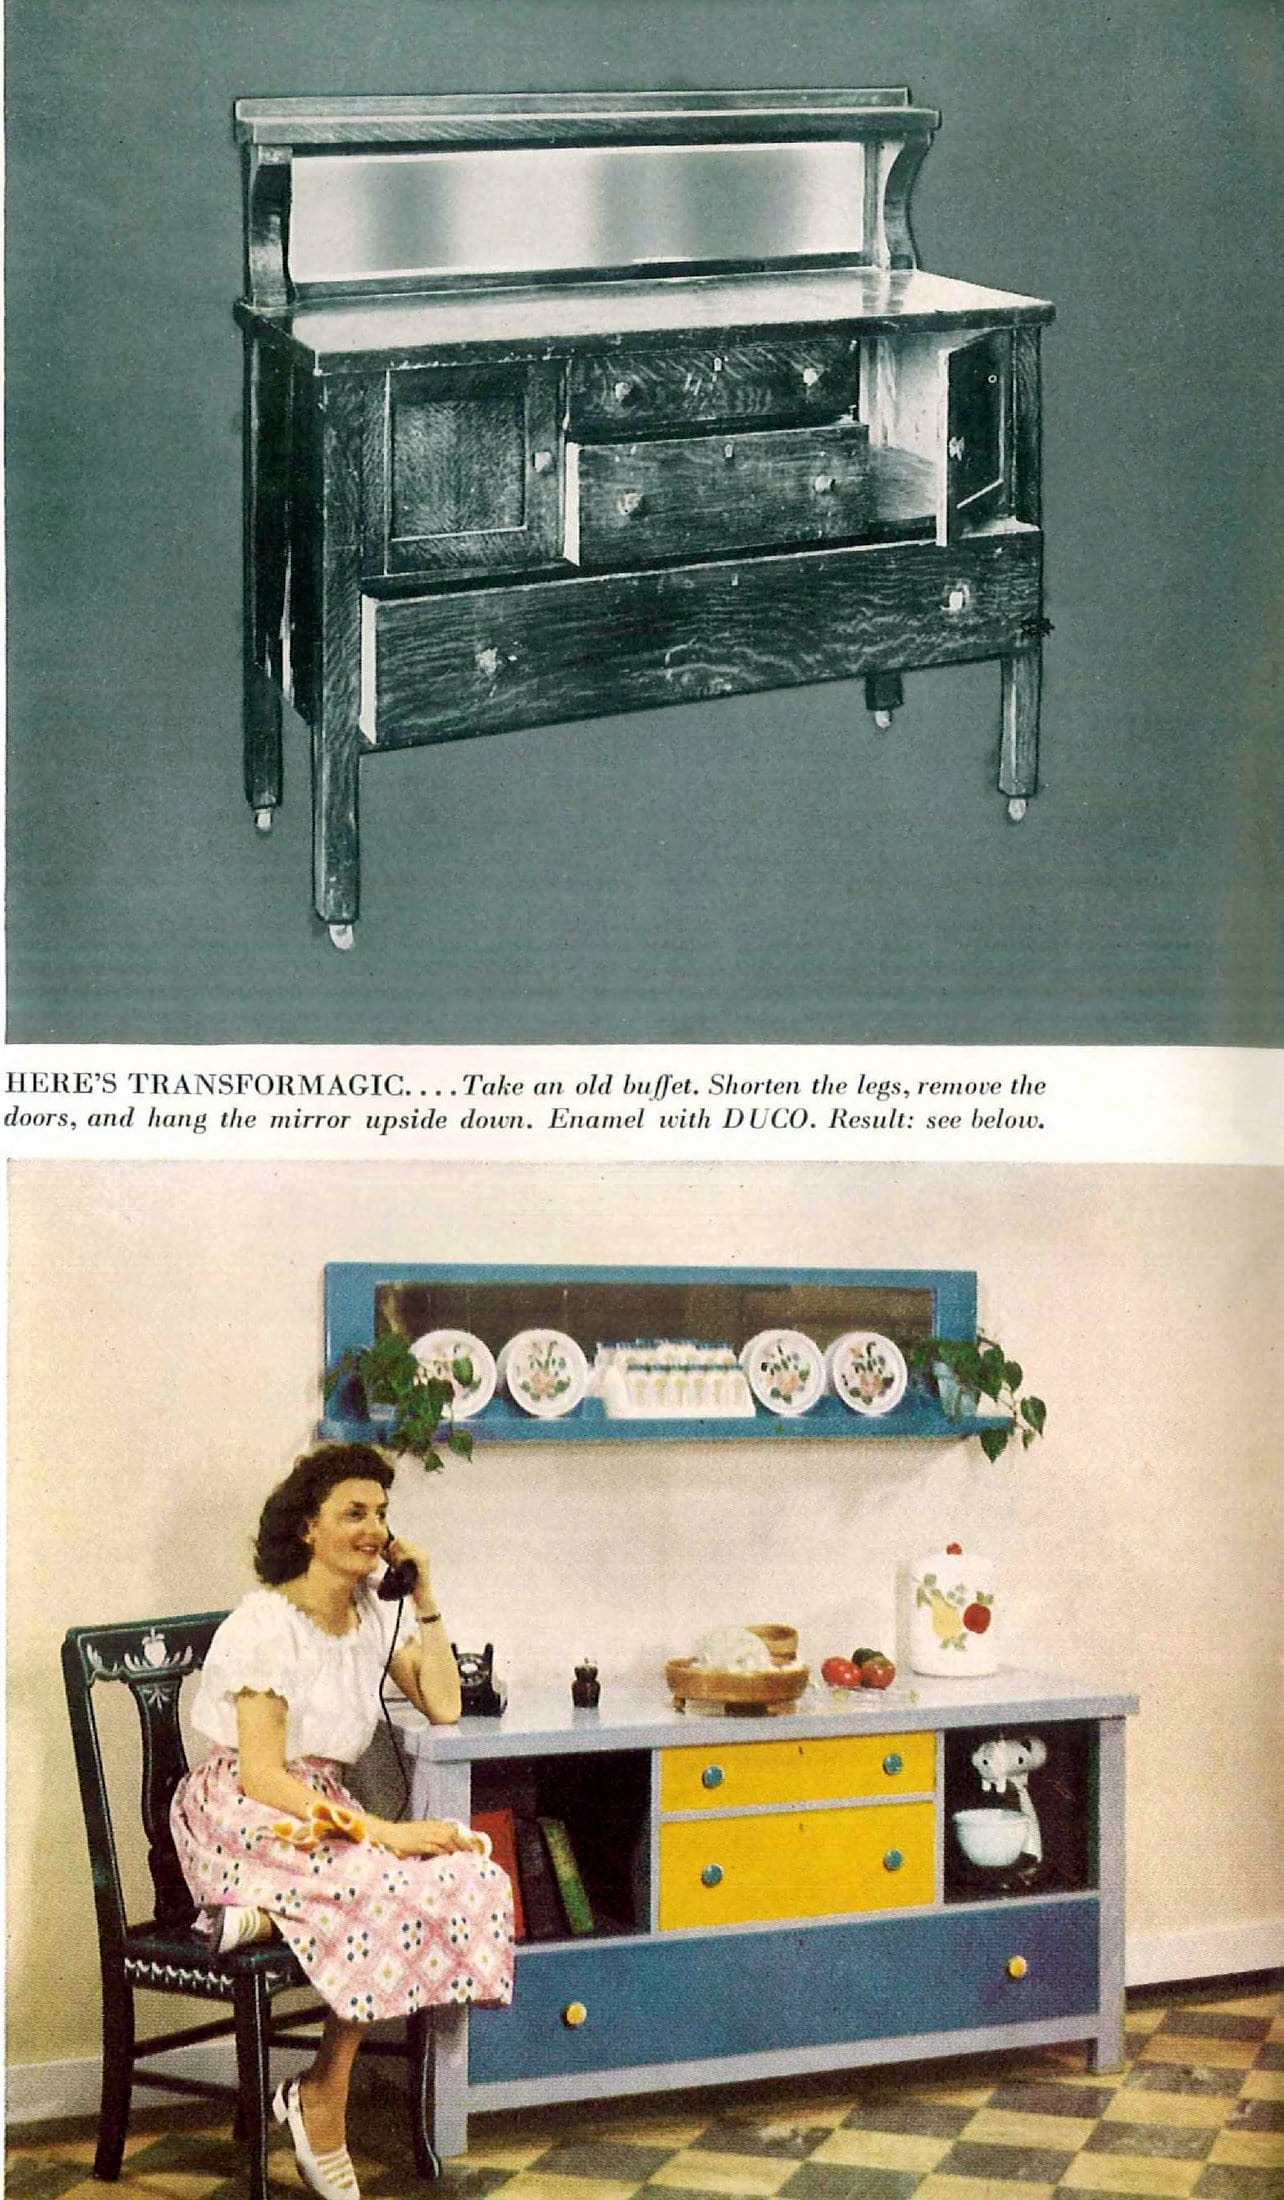 Old oak buffet transformed with paint - Ideas from the 1940s